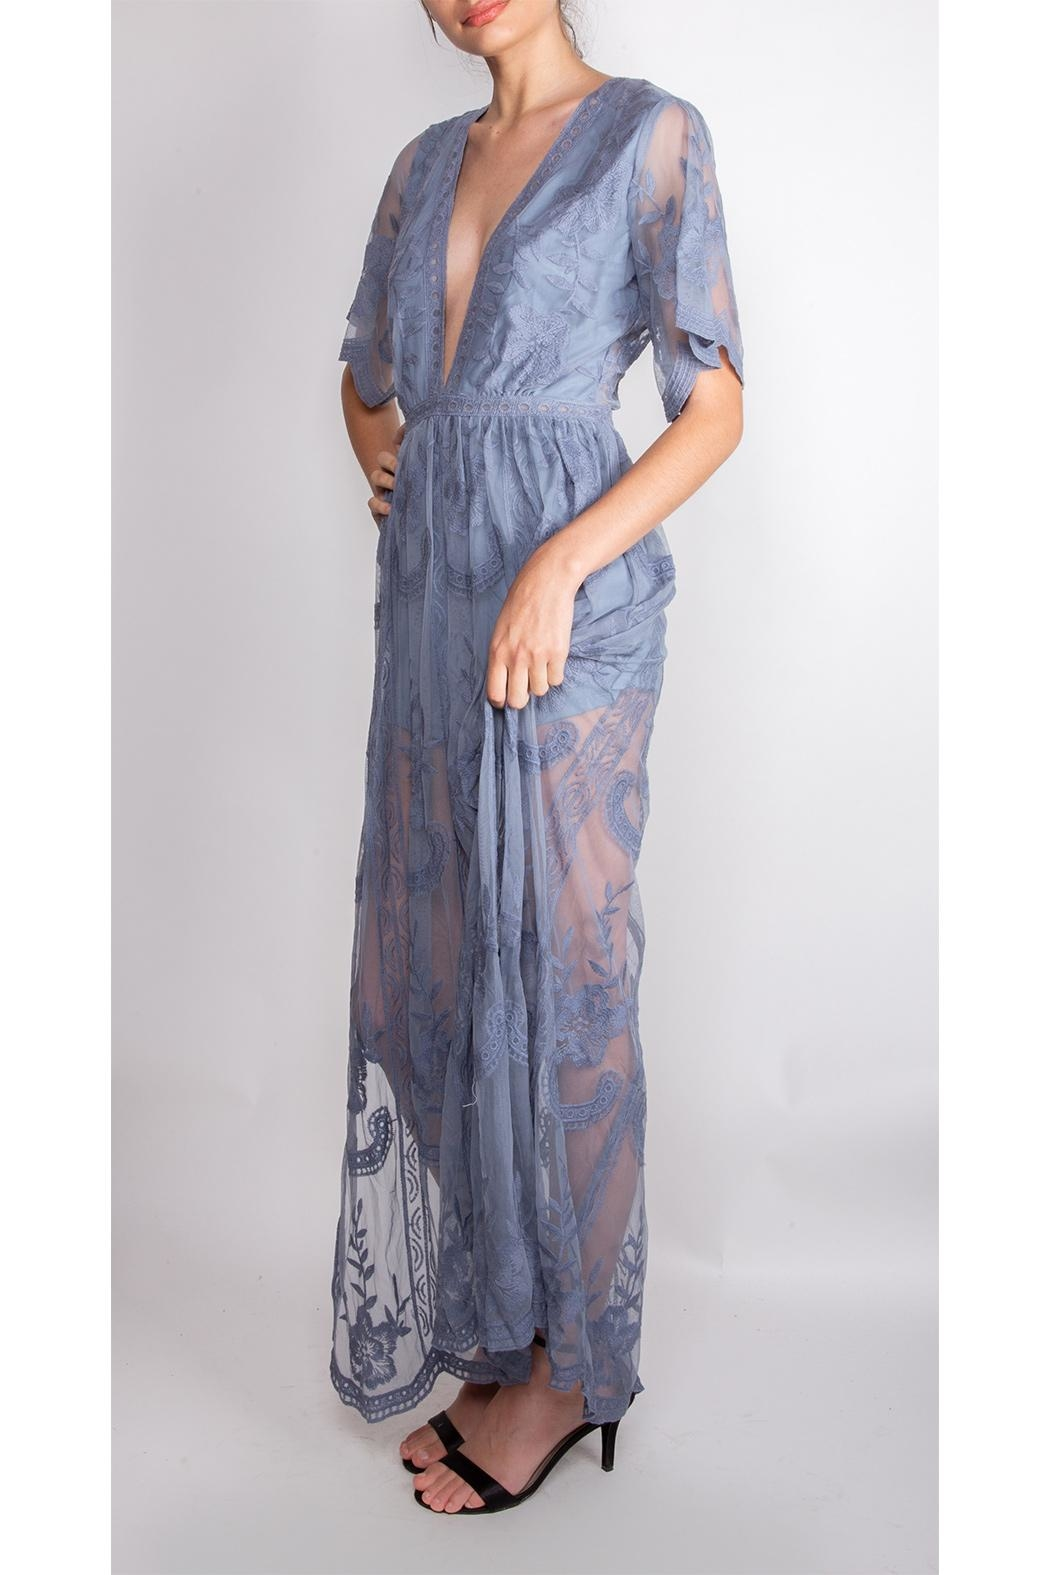 Wild Honey Butterfly Lace Maxi-Dress - Side Cropped Image